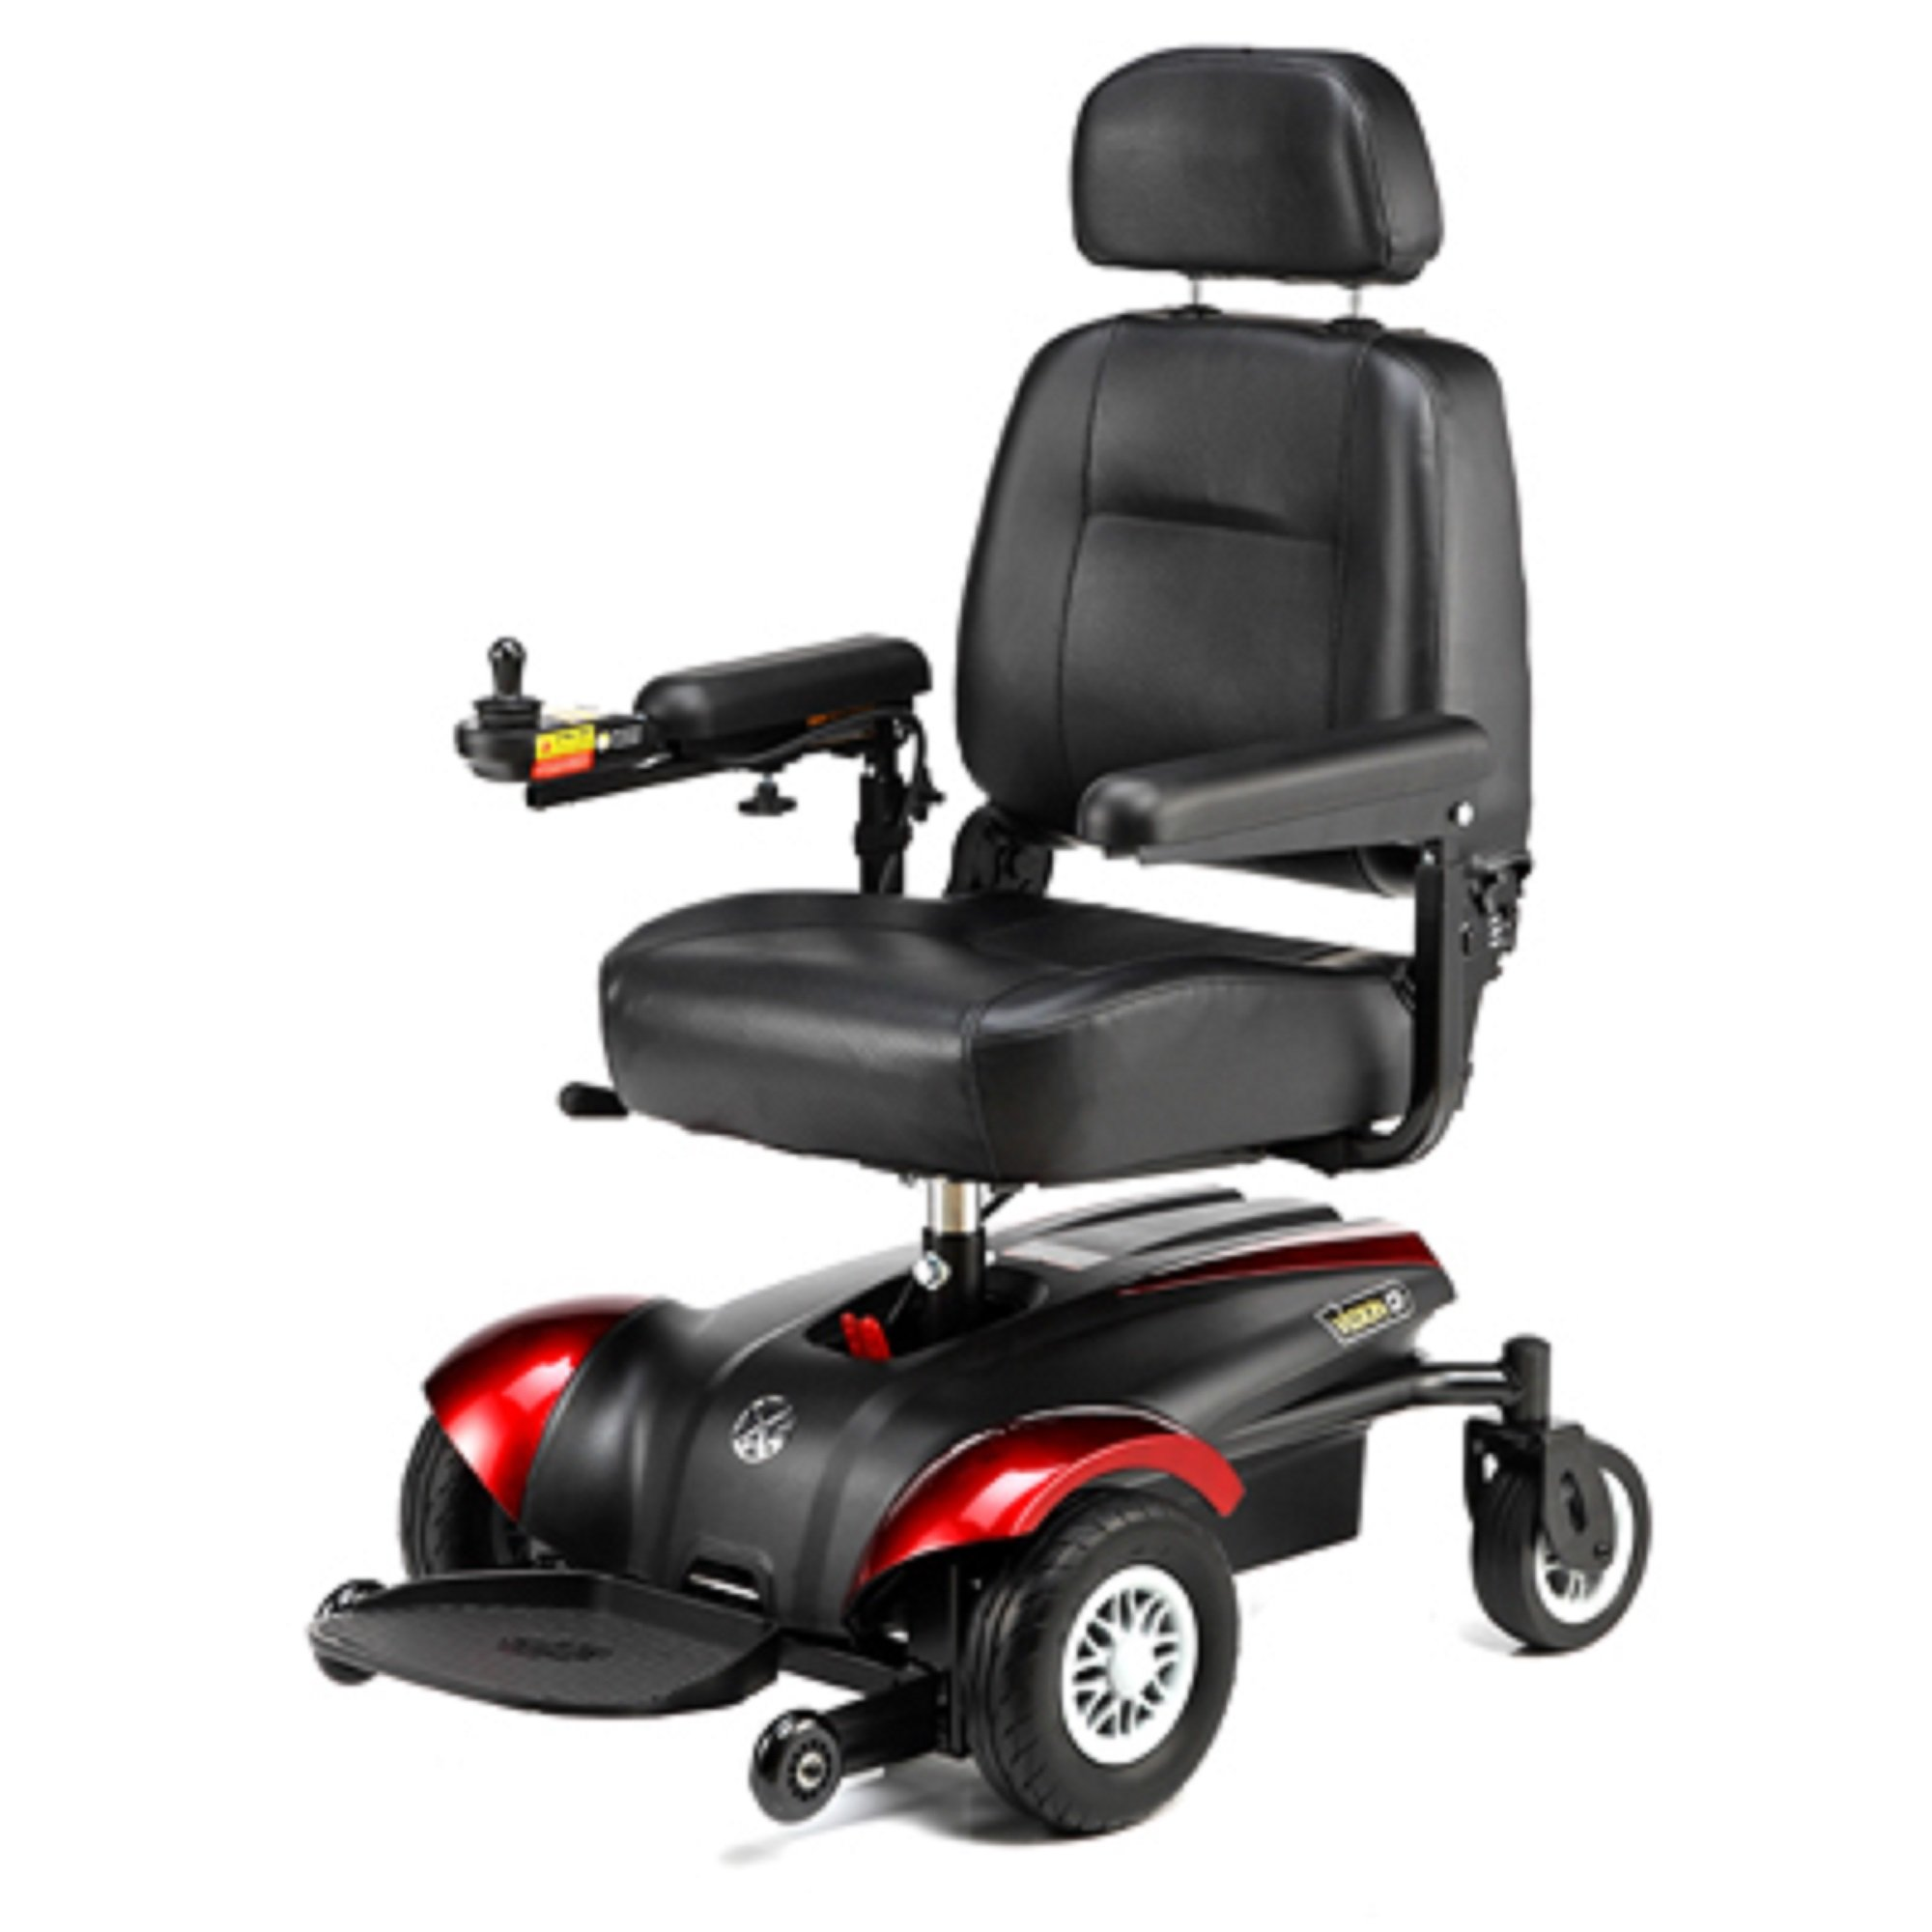 Merits Health Products - Vision CF - Front Wheel Drive Power Chair - 18''W x 16''D - Red